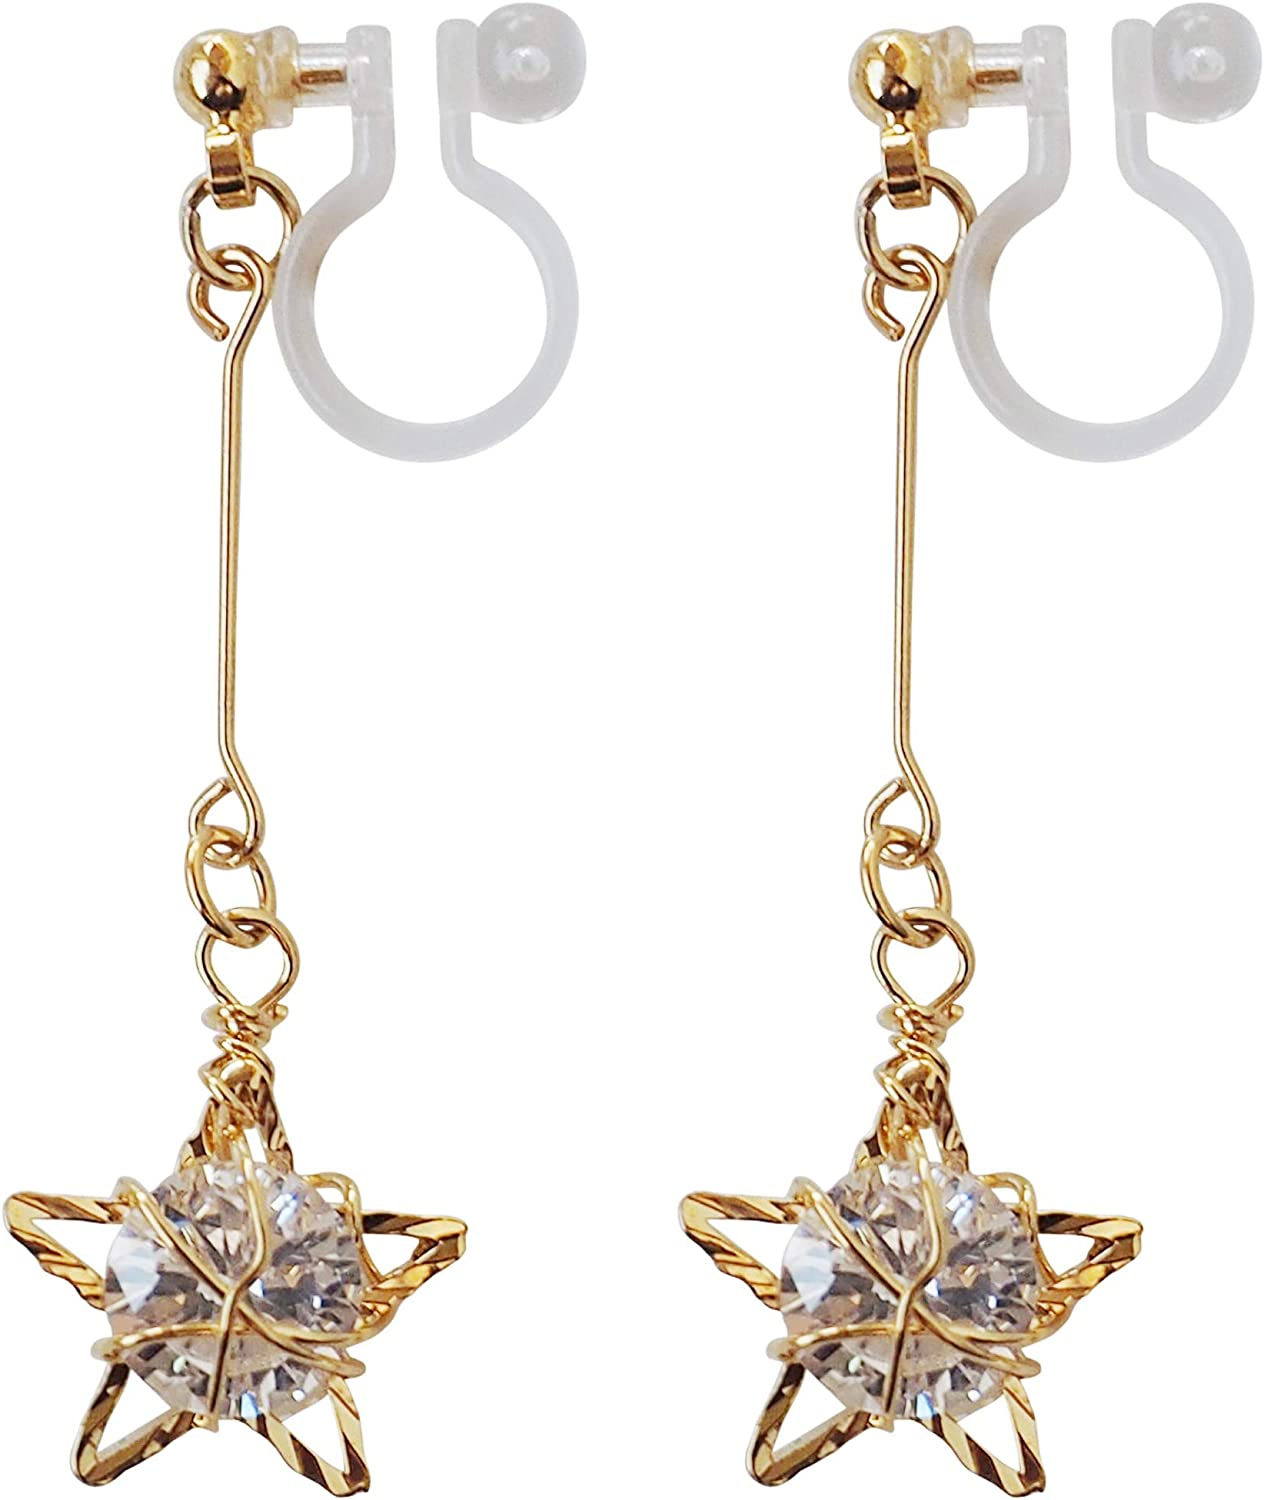 Elegant Gold Star Invisible Clip On Earrings Dangle for Women Cubic Zirconia Crystal Non Pierced Comfortable Clip On Earrings MiyabiGrace